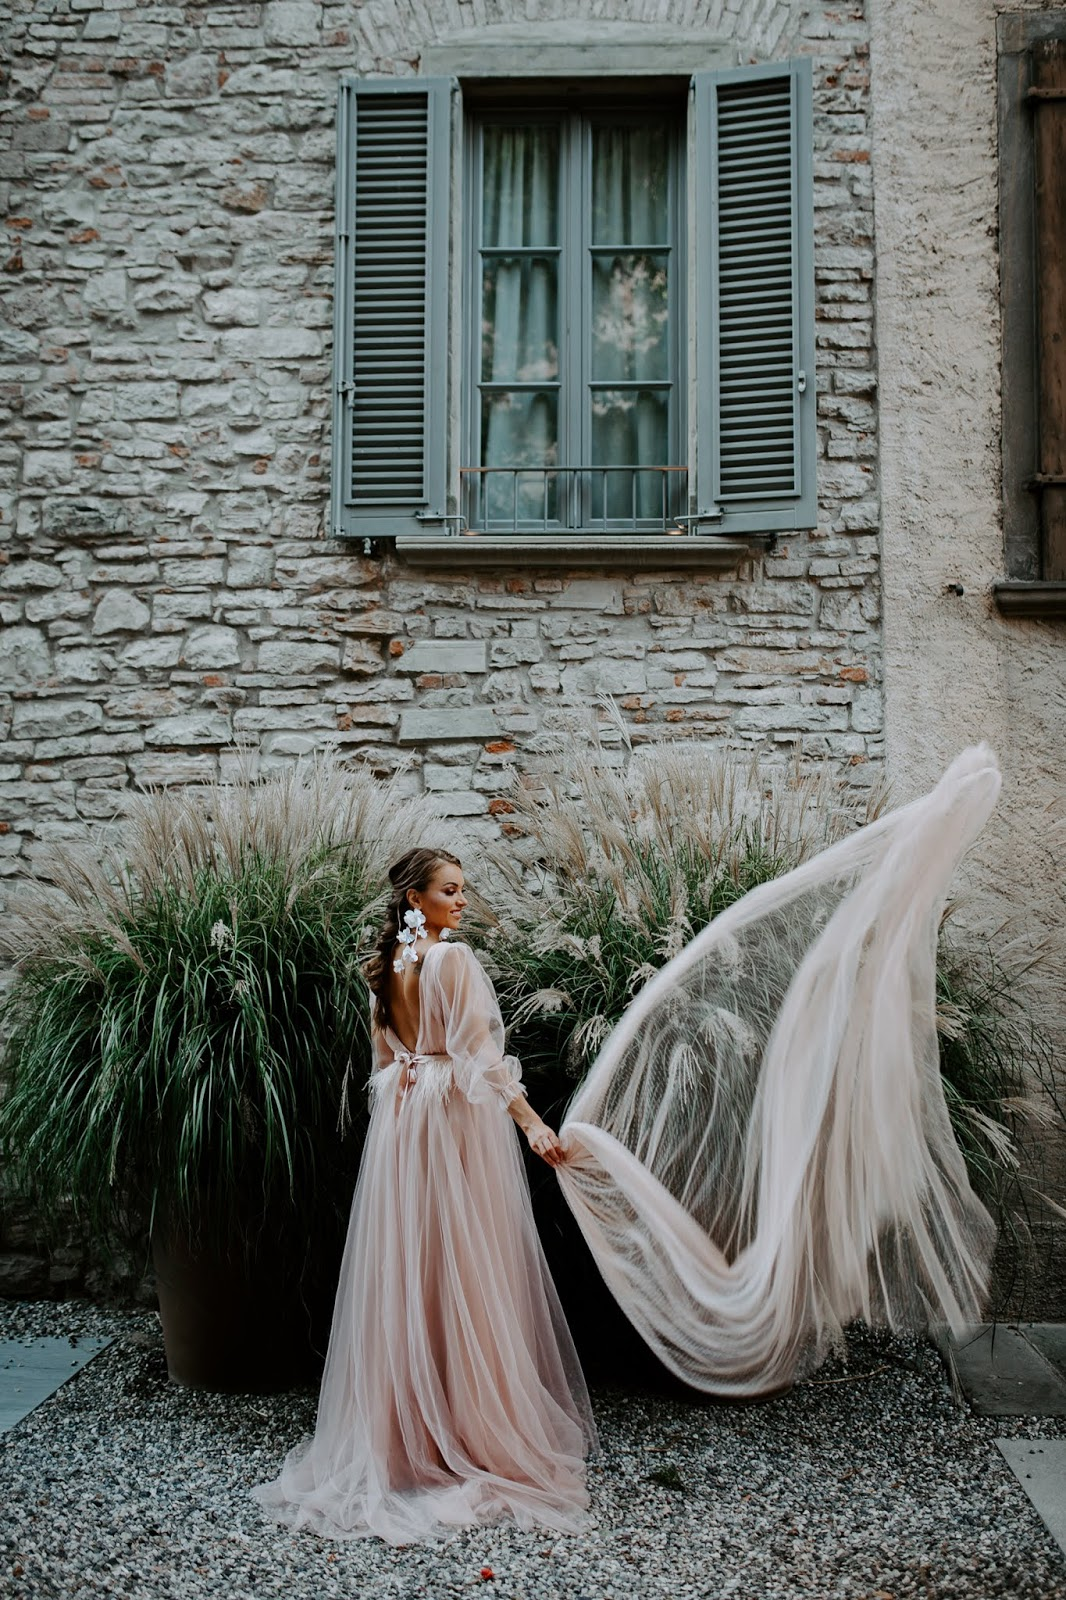 Win a wedding dress by She Wore Flowers designer Amelia! Enter our giveaway contest to choose from our wedding dresses by Amelia as the prize!